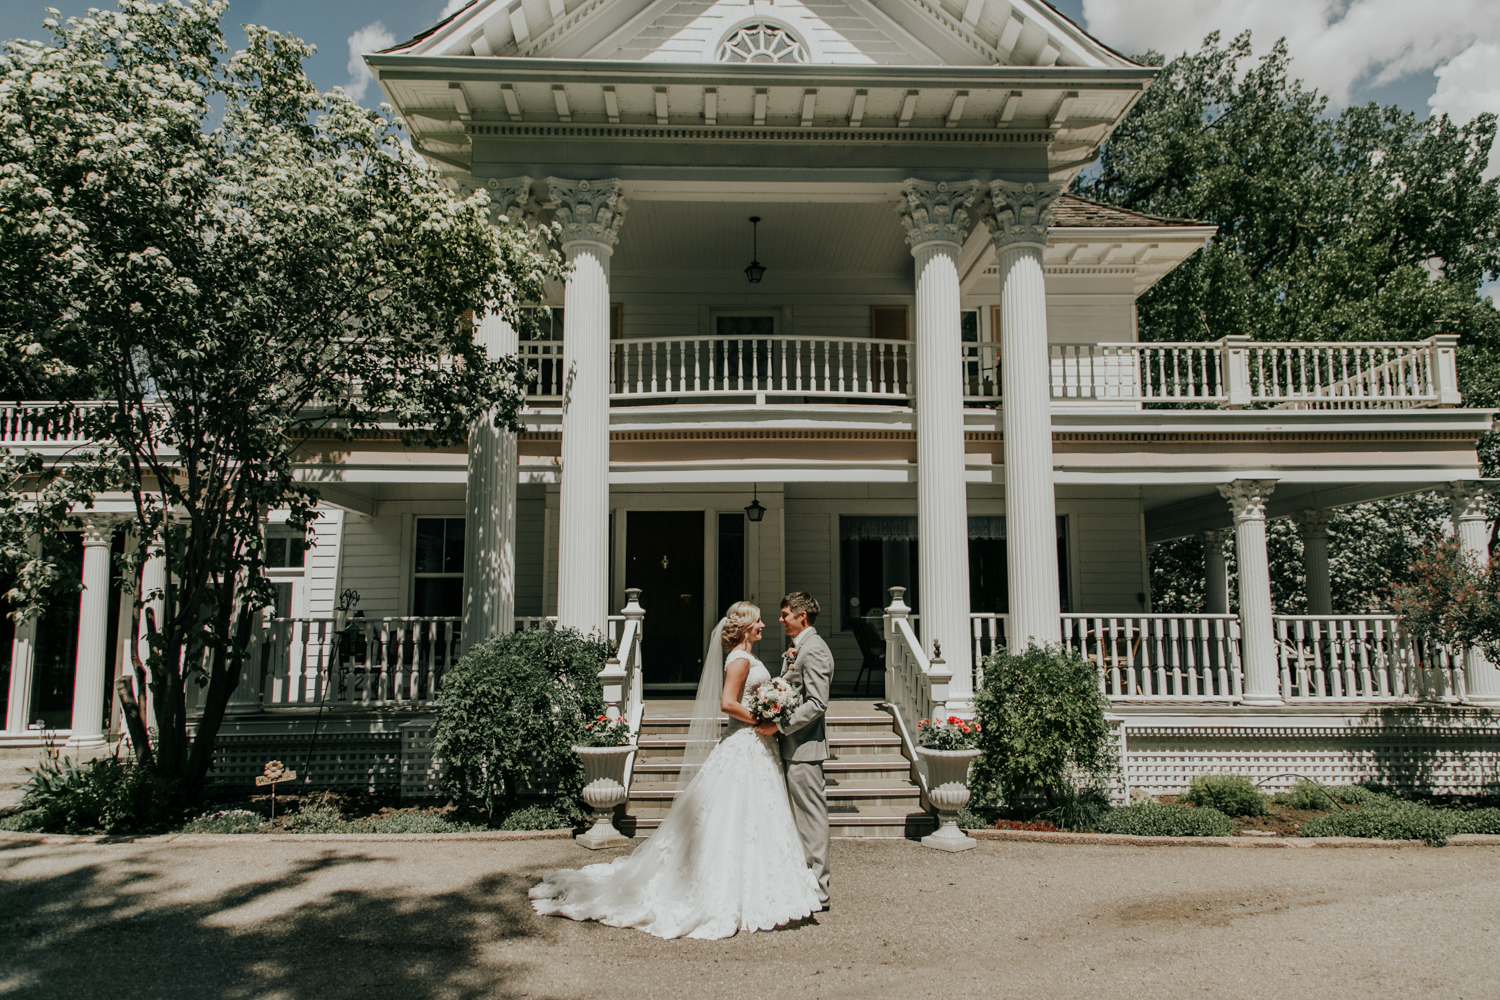 norland-estate-wedding-lethbridge-photography-love-and-be-loved-photographer-picture-image-photo-2.jpg